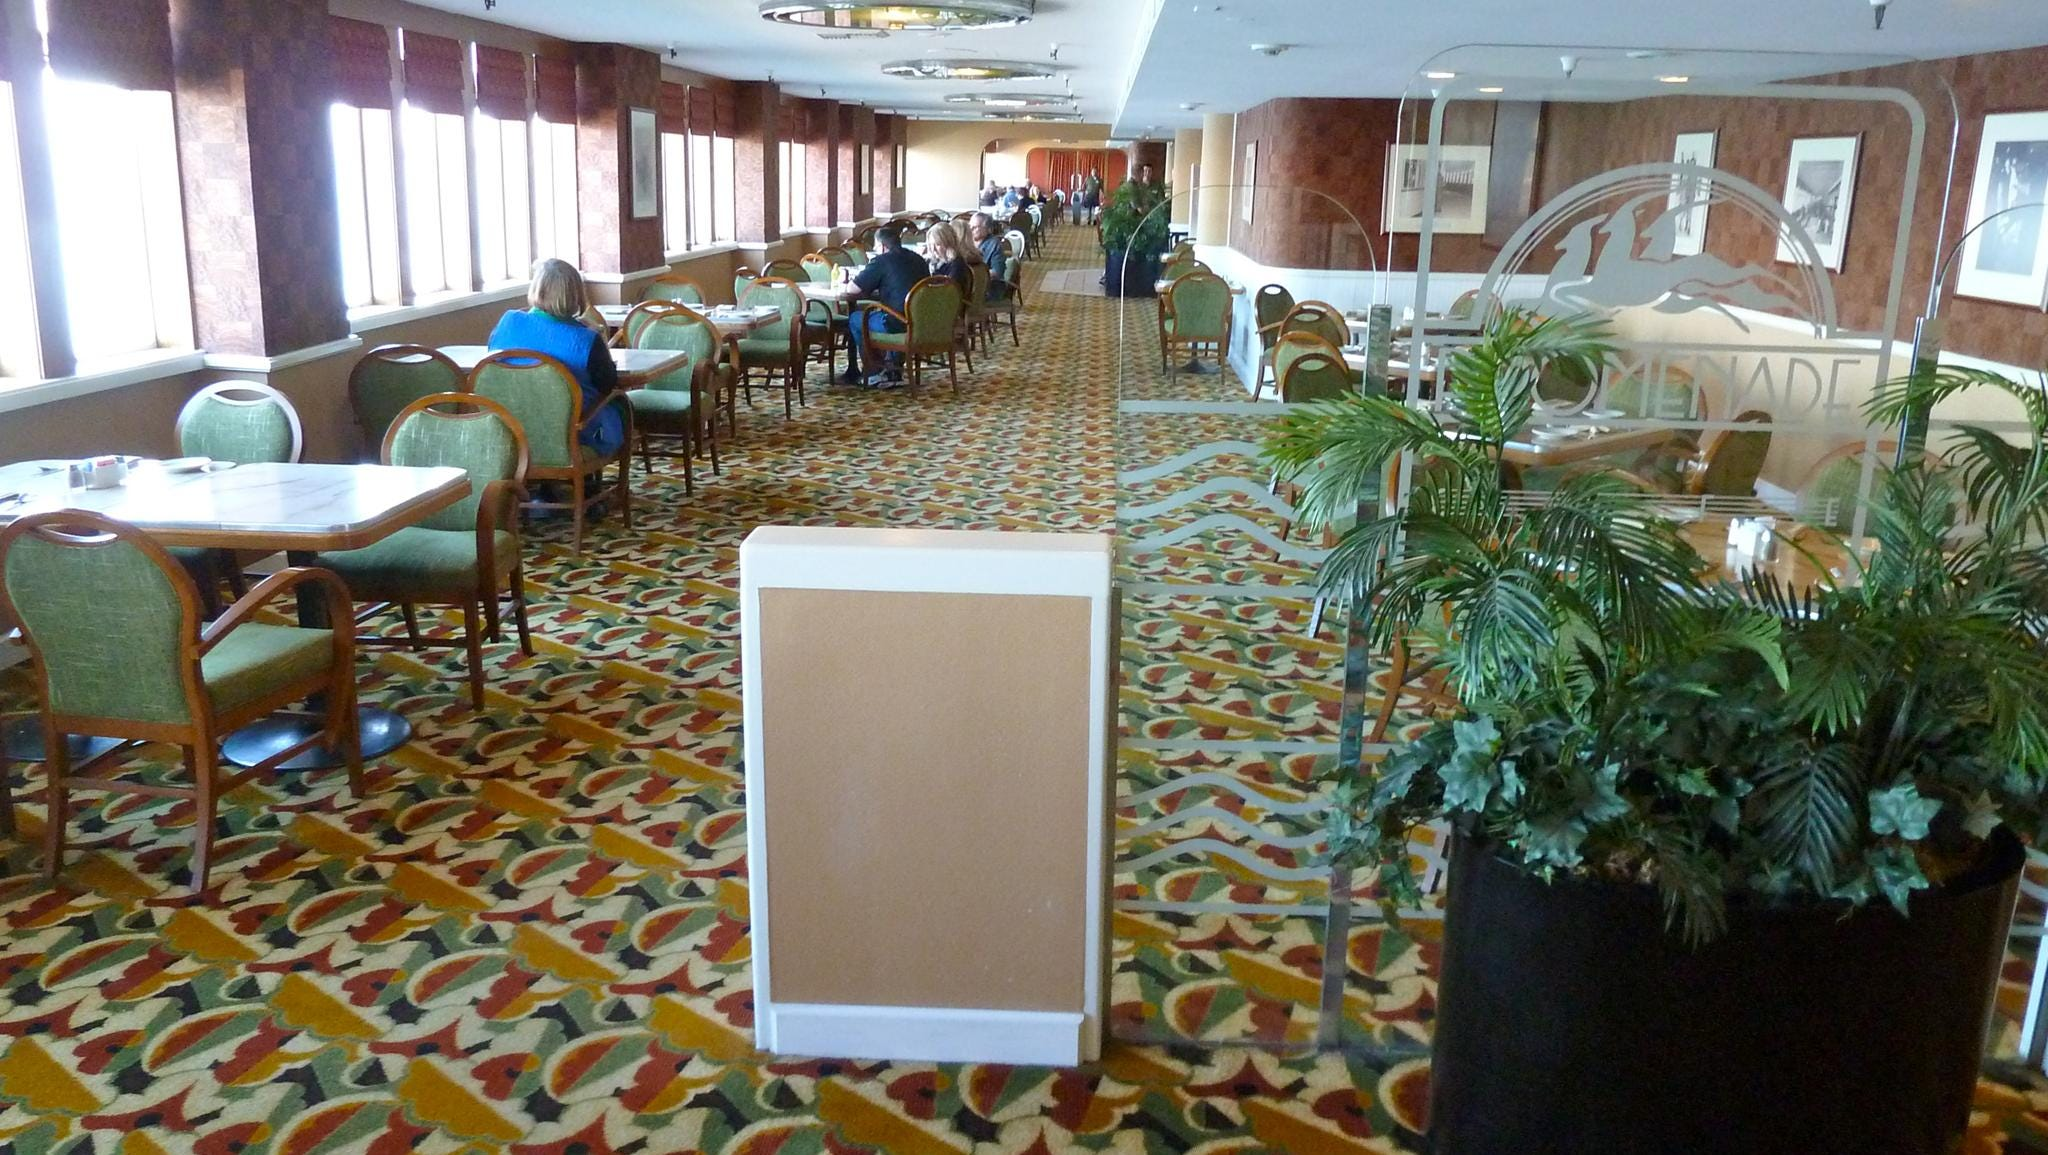 On the starboard side of the ship, the enclosed promenade was converted into restaurants and meeting rooms with a view of the downtown Long Beach skyline. Starting the line up is the Promenade Cafe, which is open for breakfast, lunch and dinner and serves up casual American diner fare.